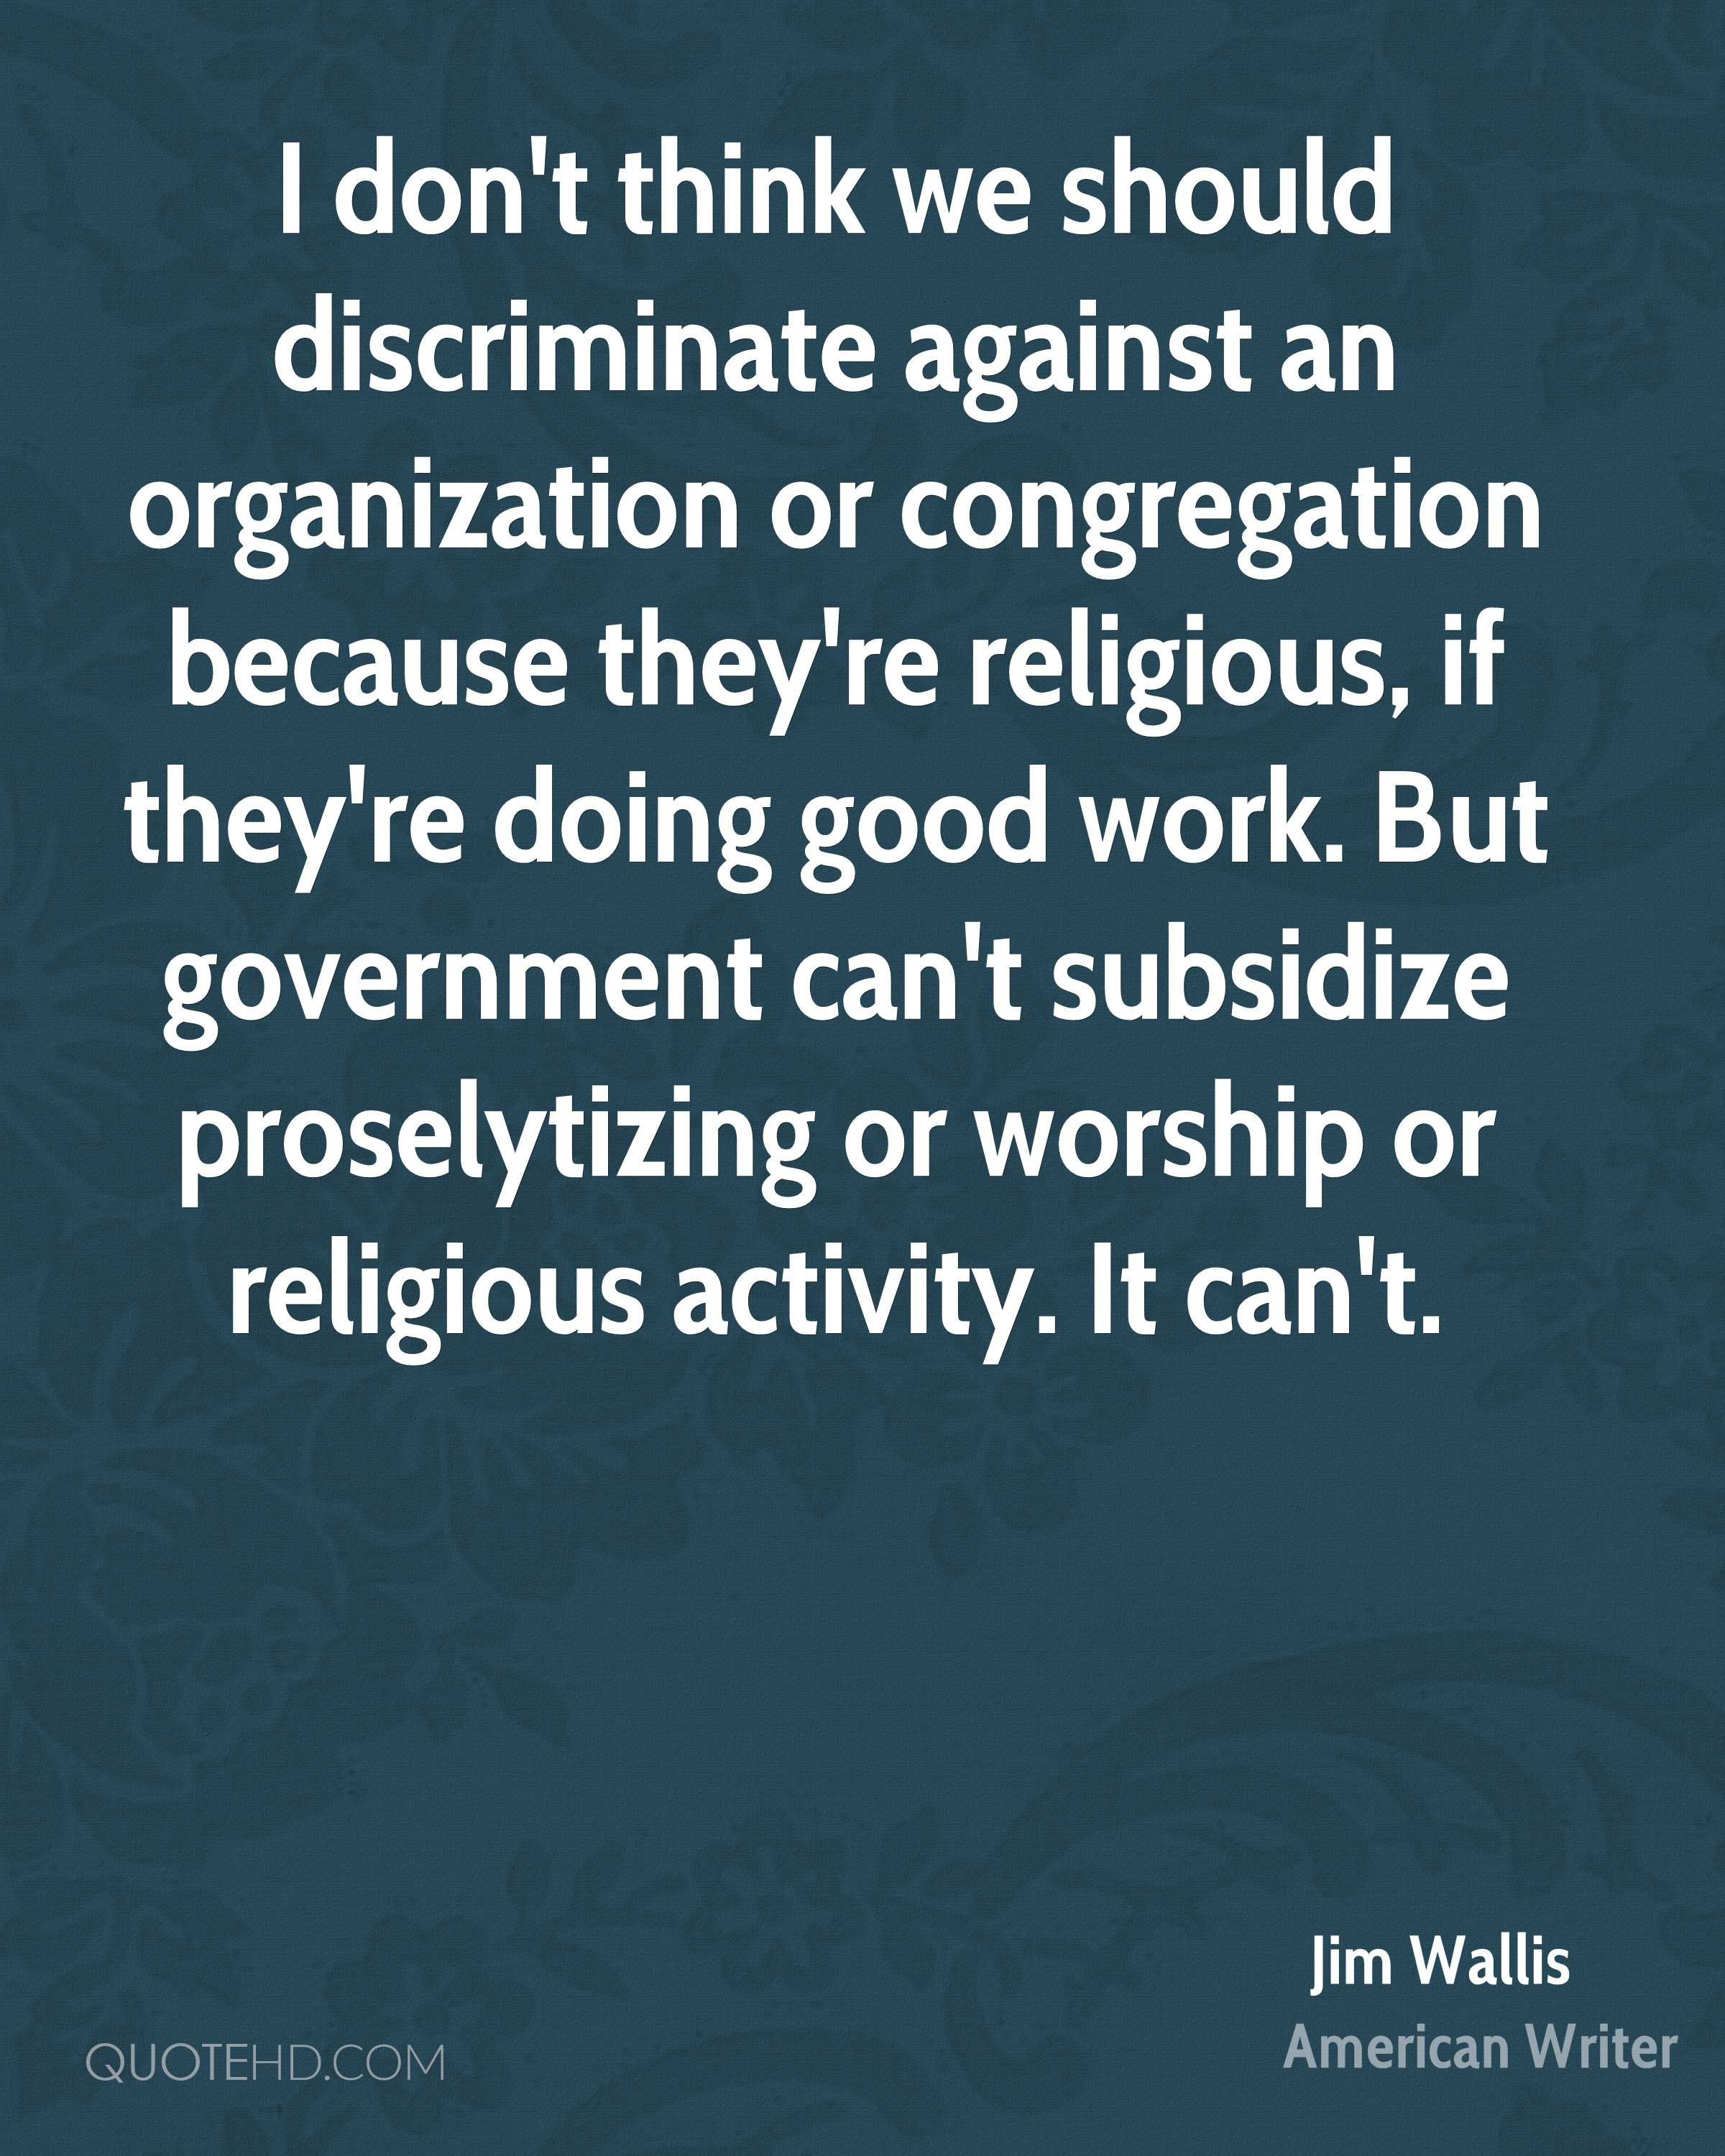 I don't think we should discriminate against an organization or congregation because they're religious, if they're doing good work. But government can't subsidize proselytizing or worship or religious activity. It can't.